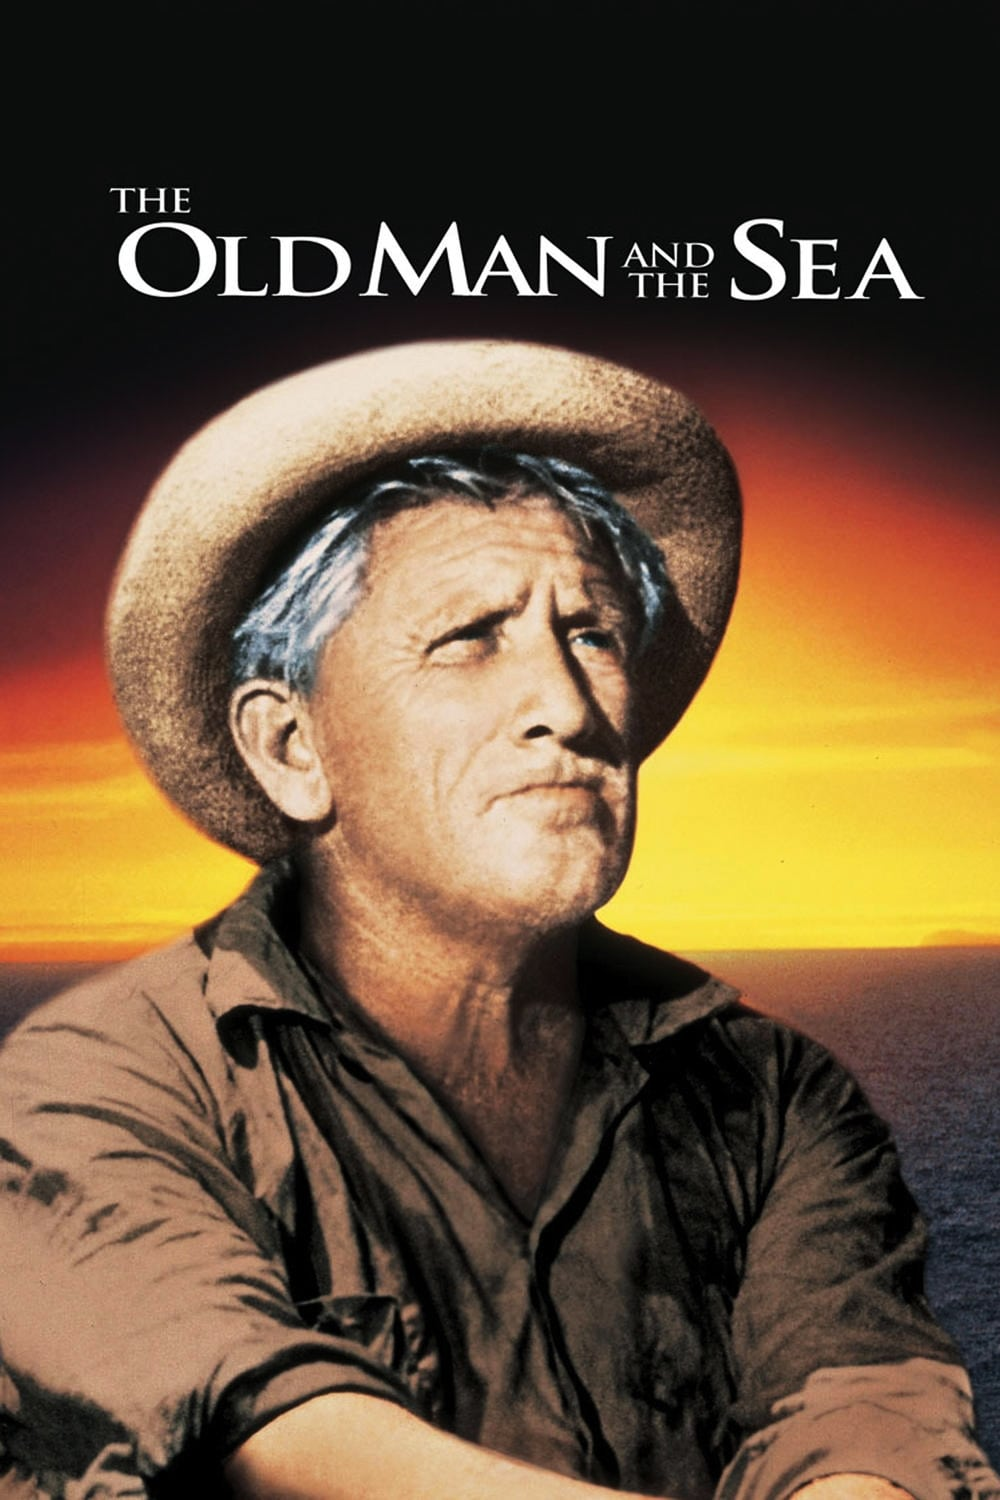 The Old Man and the Sea (1958)